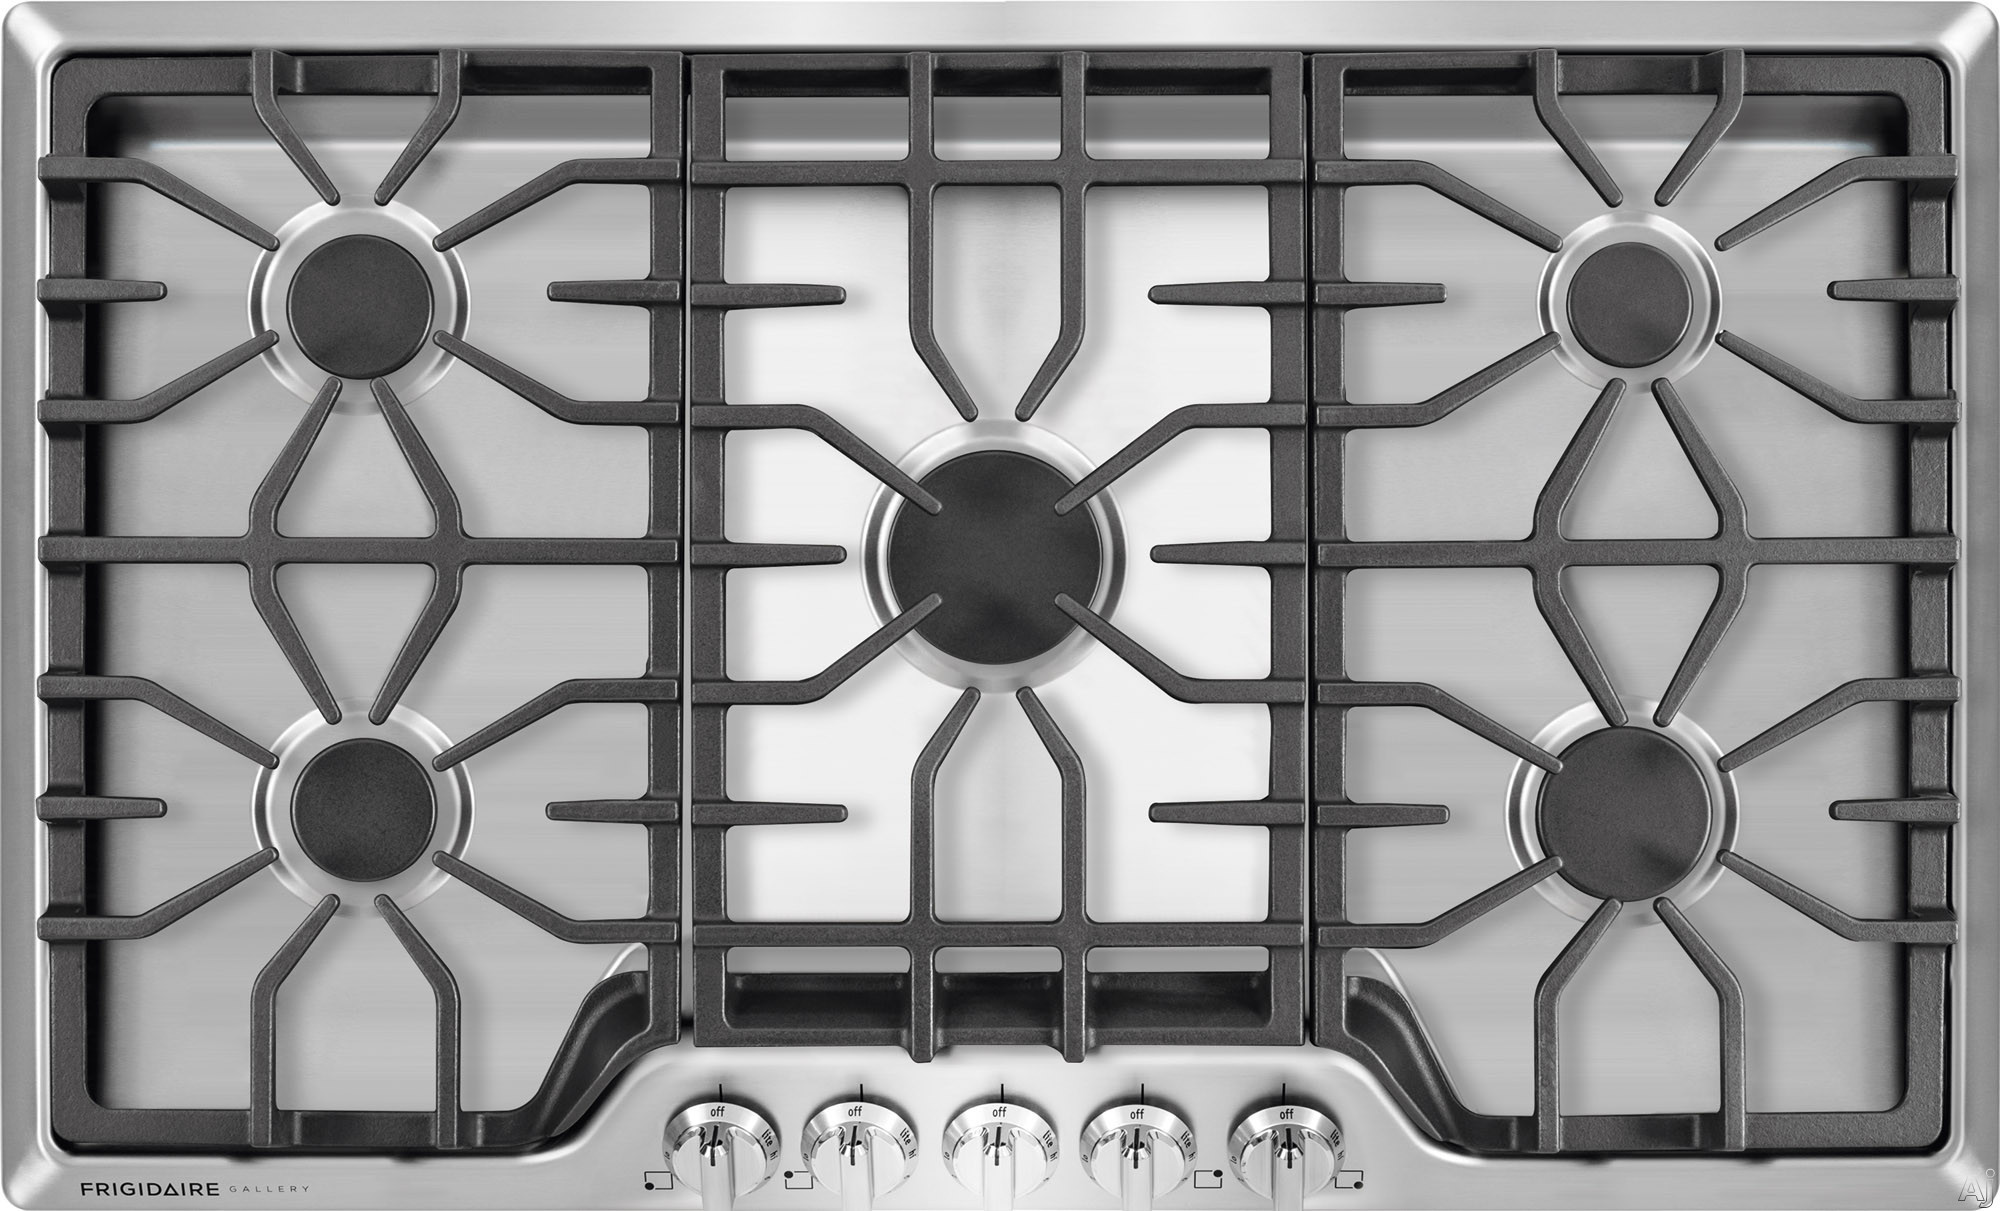 Frigidaire Gallery Series FGGC3645Q 36 Inch Gas Cooktop with 5 Sealed Burners, Continuous Cast Iron Grates, Express-Select Control Knobs and 450 to 18,000-BTU Center Burner and ADA Compliant FGGC3645Q